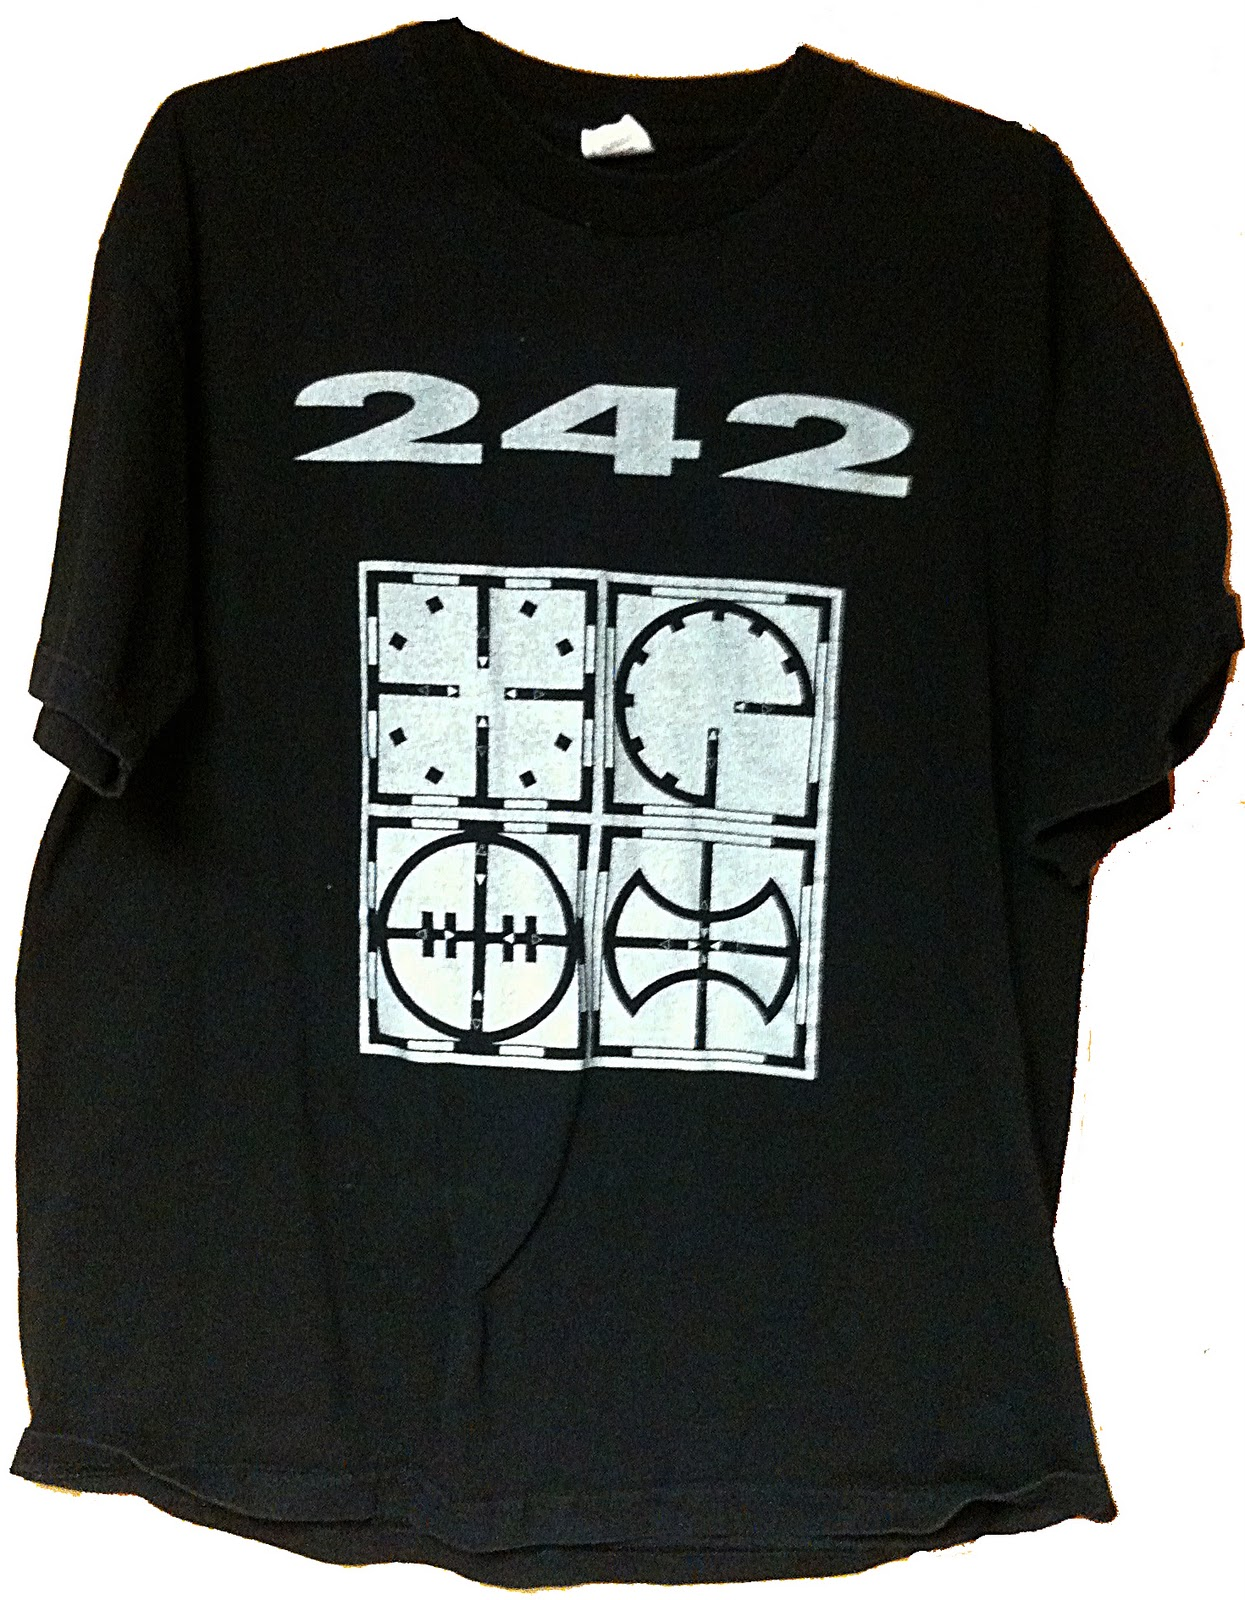 Target Work Shirts Front 242 Collector T Shirt Of The Week Tyranny Symbols